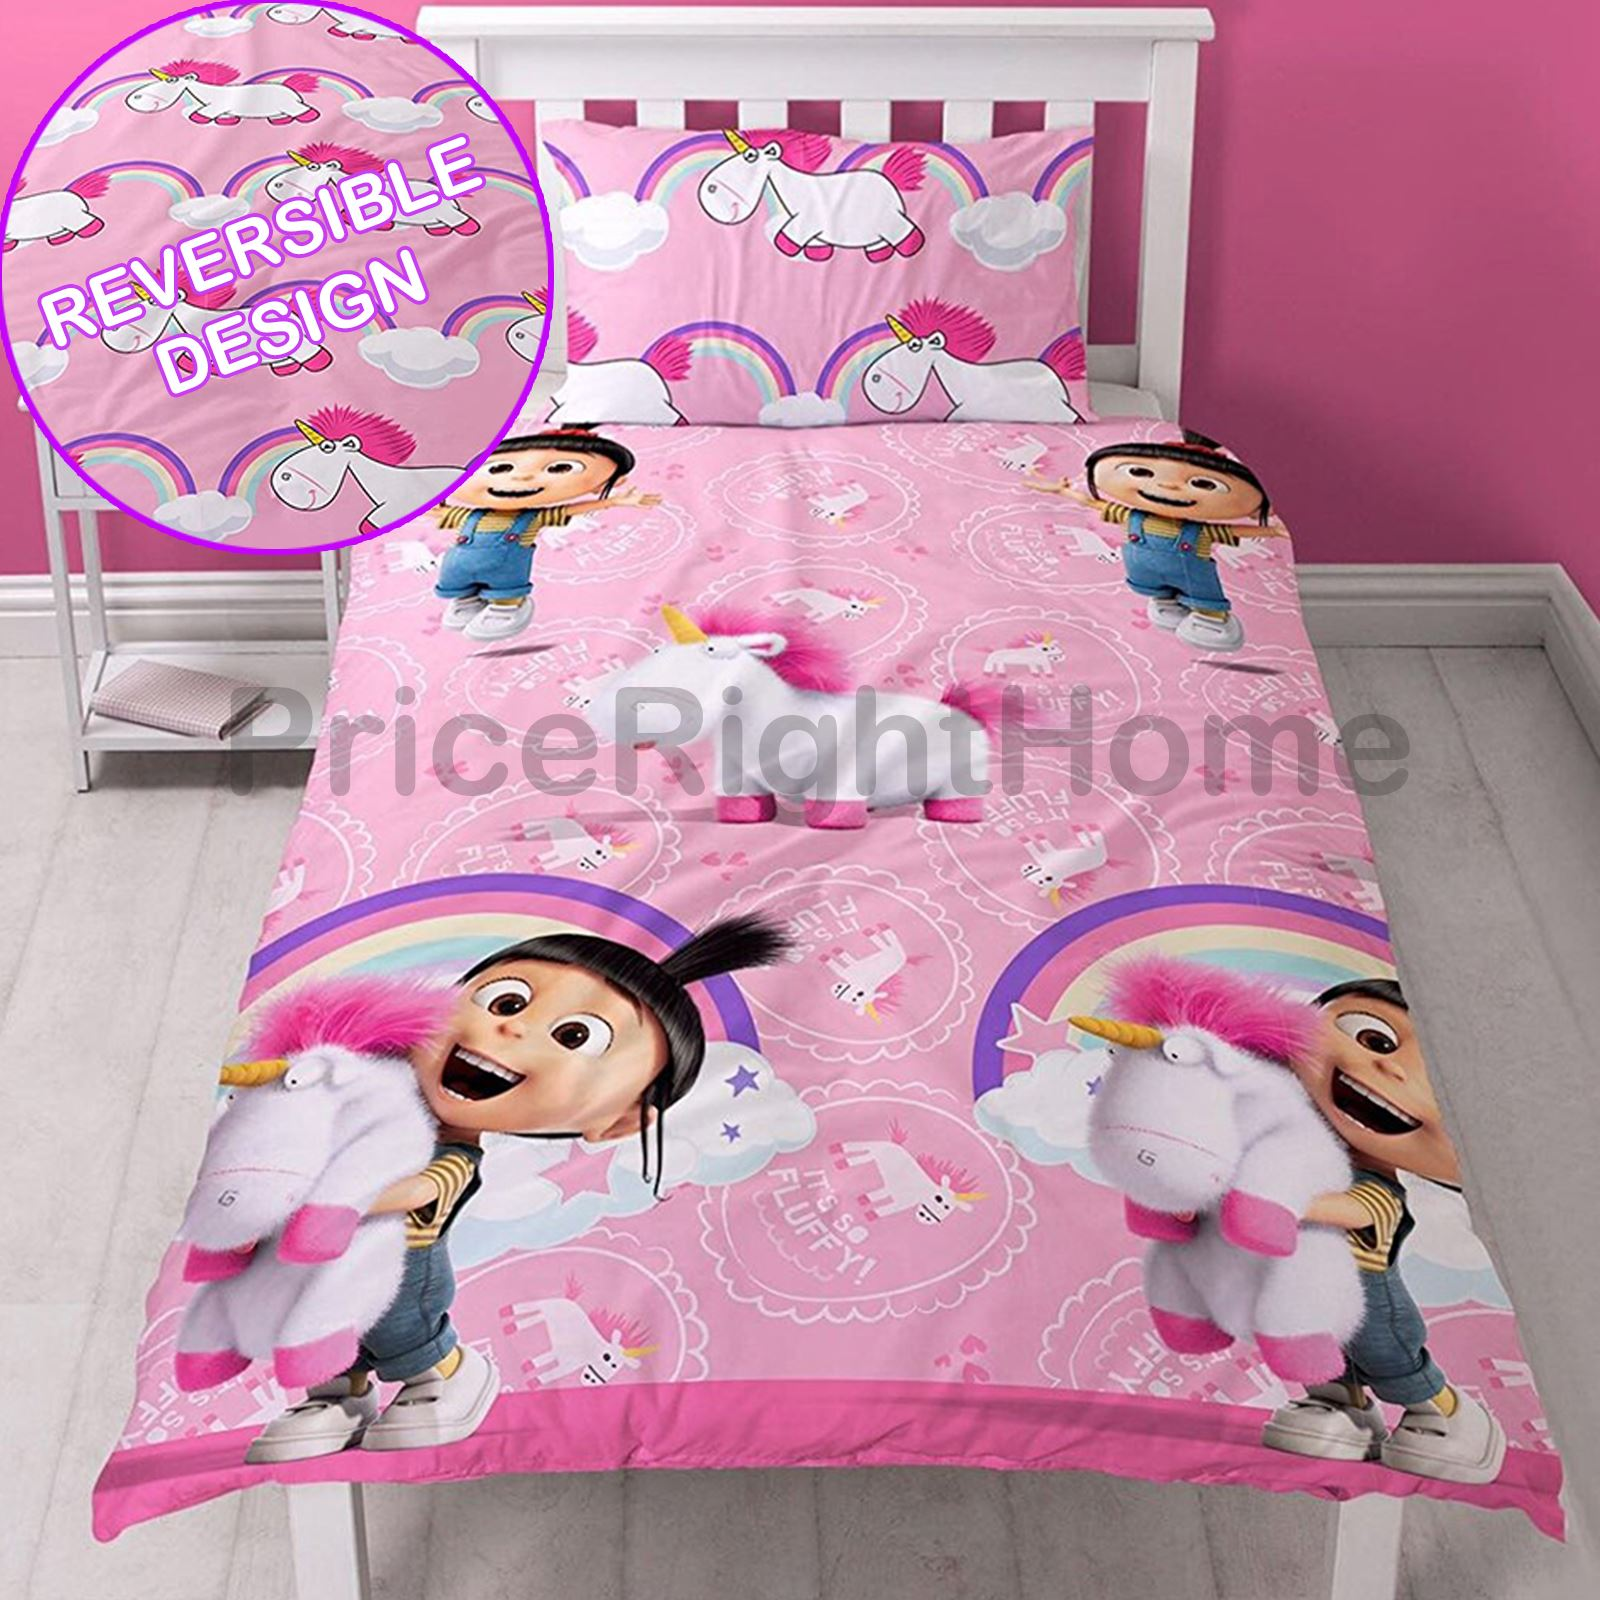 einhorn decke bez ge kinder m dchen bettw sche junior einzeln doppel king ebay. Black Bedroom Furniture Sets. Home Design Ideas